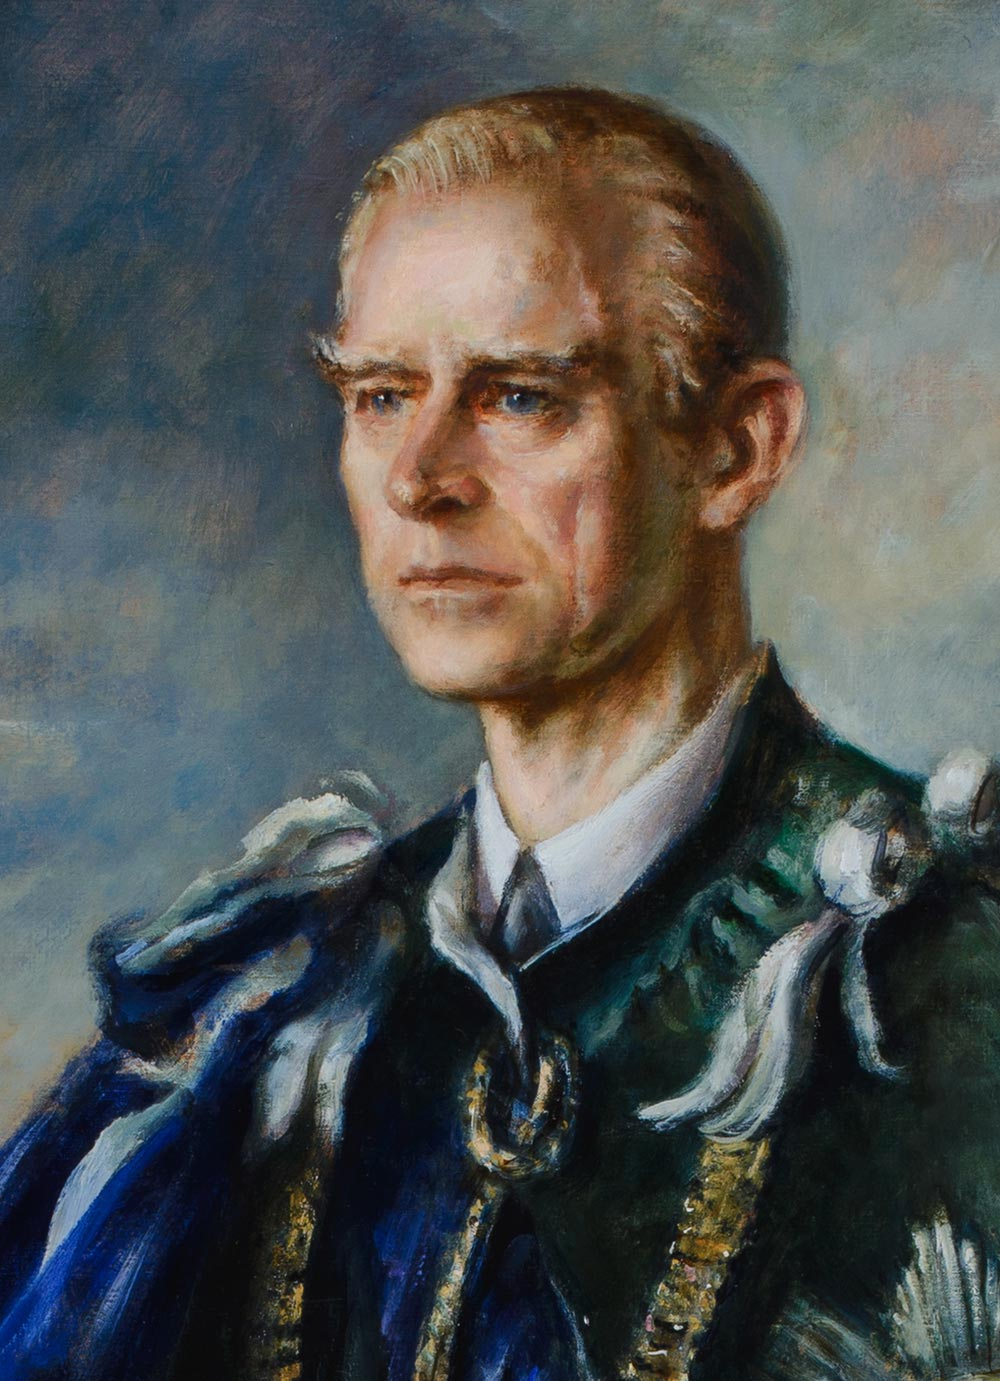 Portrait - HRH Prince Philip, Duke of Edinburgh